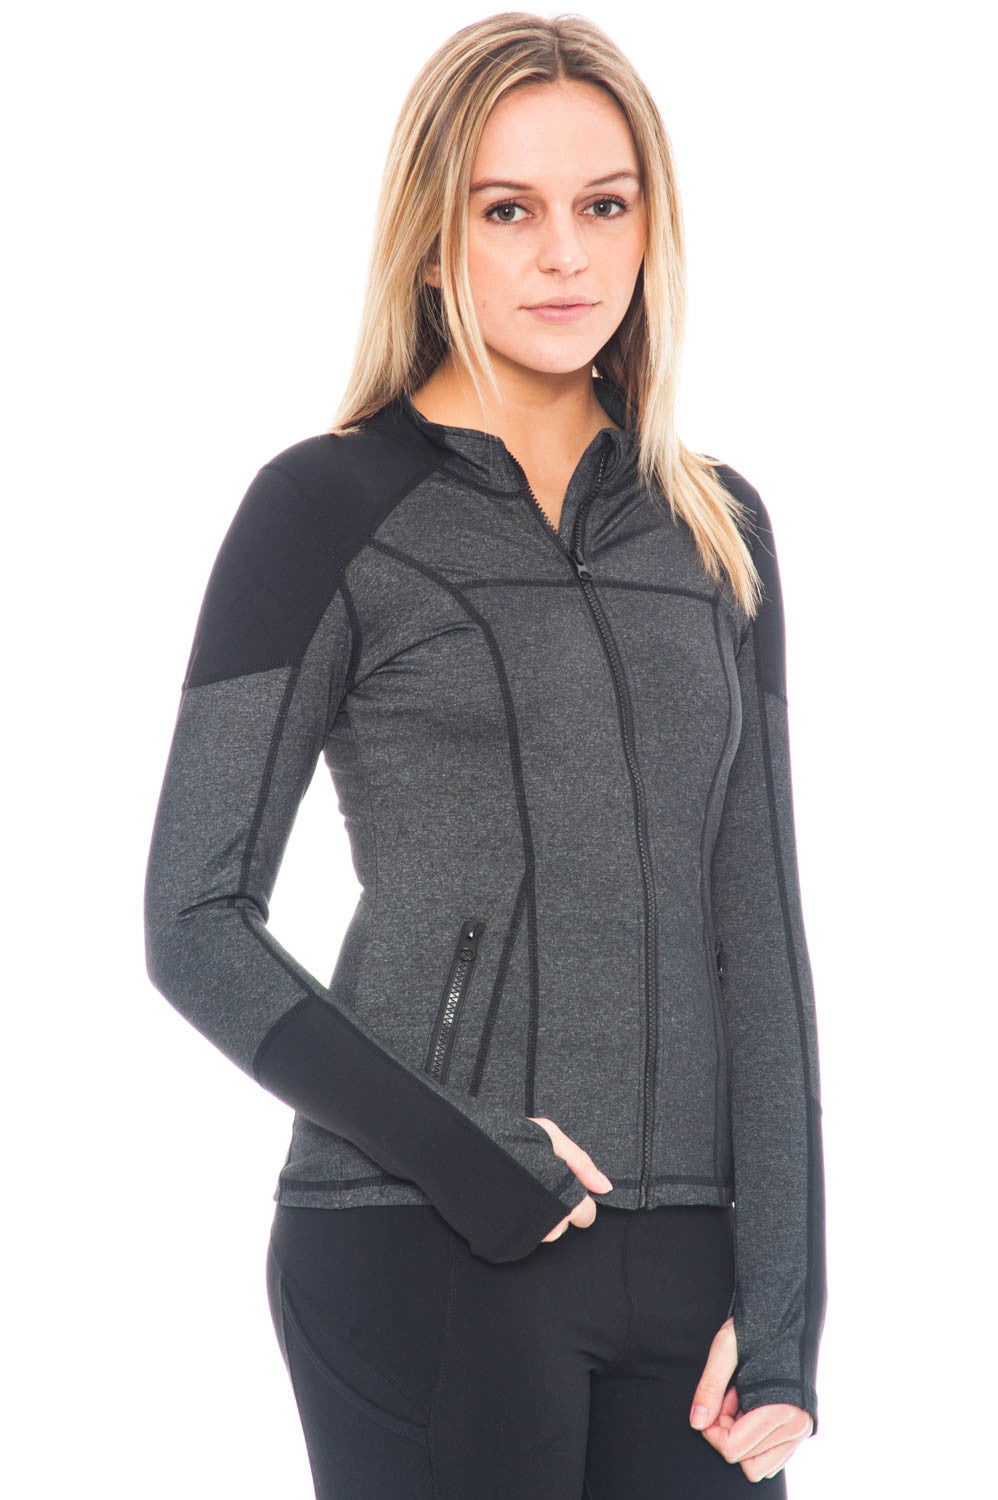 Jacket - Activewear Top with Zipper Details By Motion by Coalition